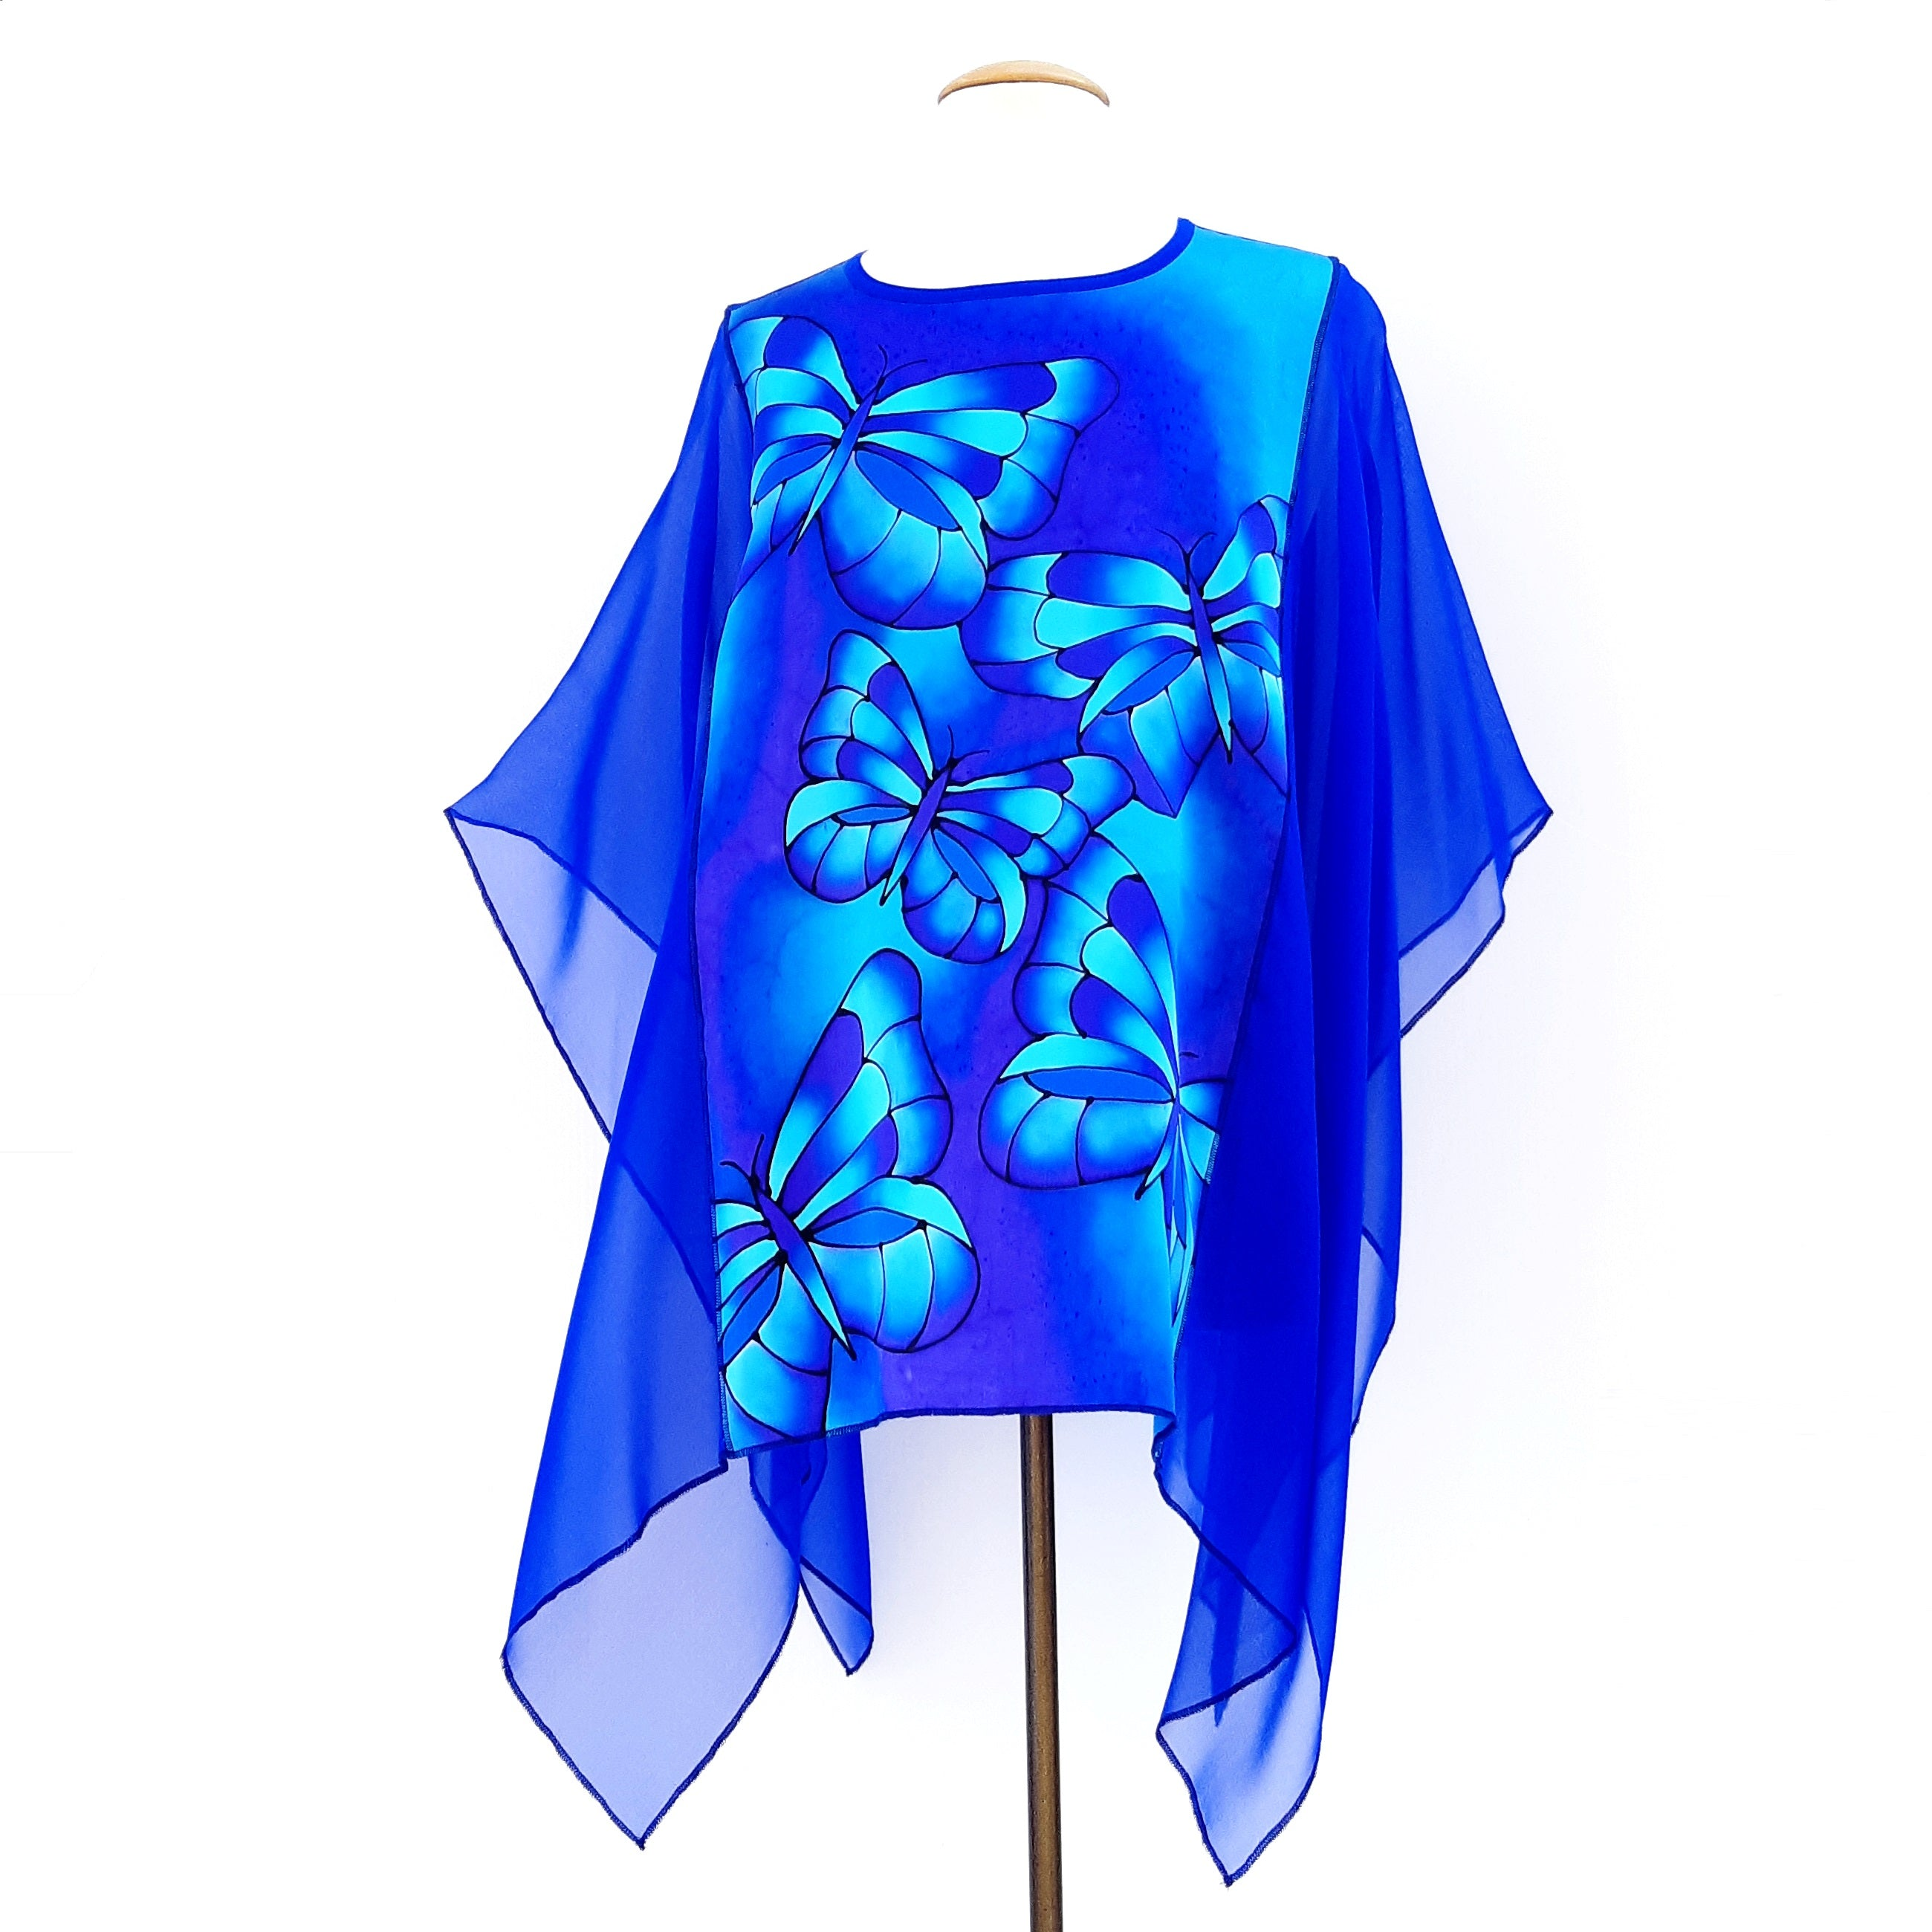 blouse designer fashion silk handmade